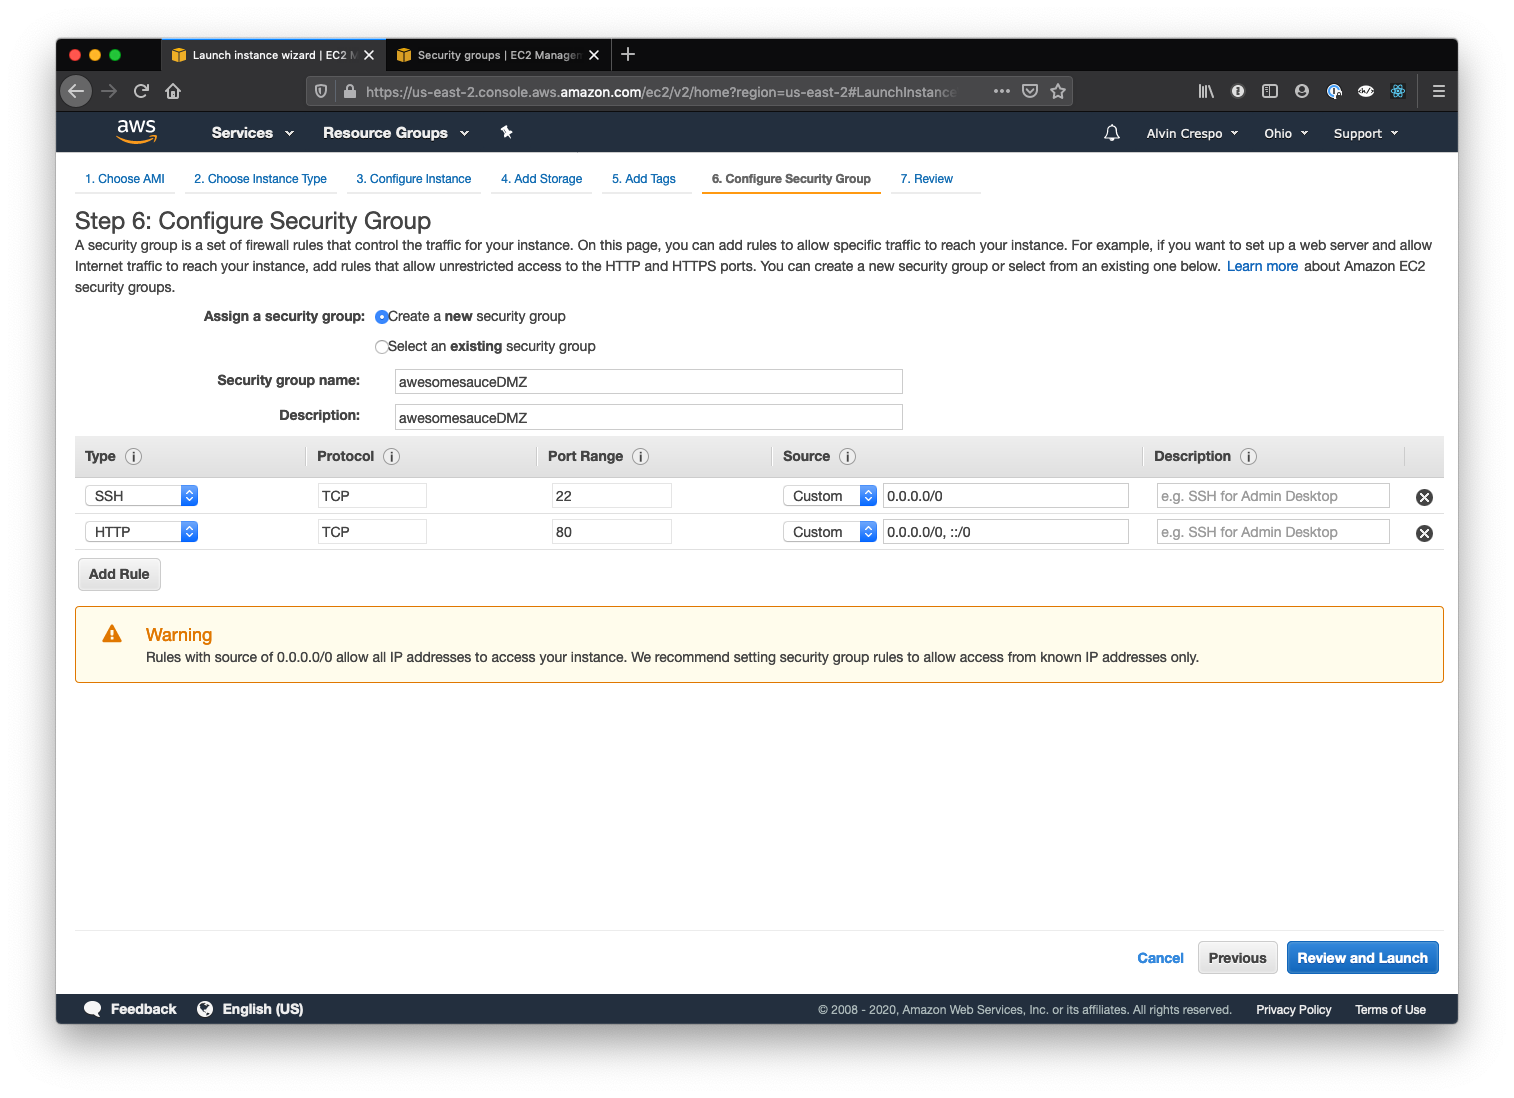 https://alvincrespo-blog.s3.us-east-2.amazonaws.com/aws-setting-up-a-vpc-from-scratch/Screen_Shot_2020-02-09_at_7.51.34_AM.png